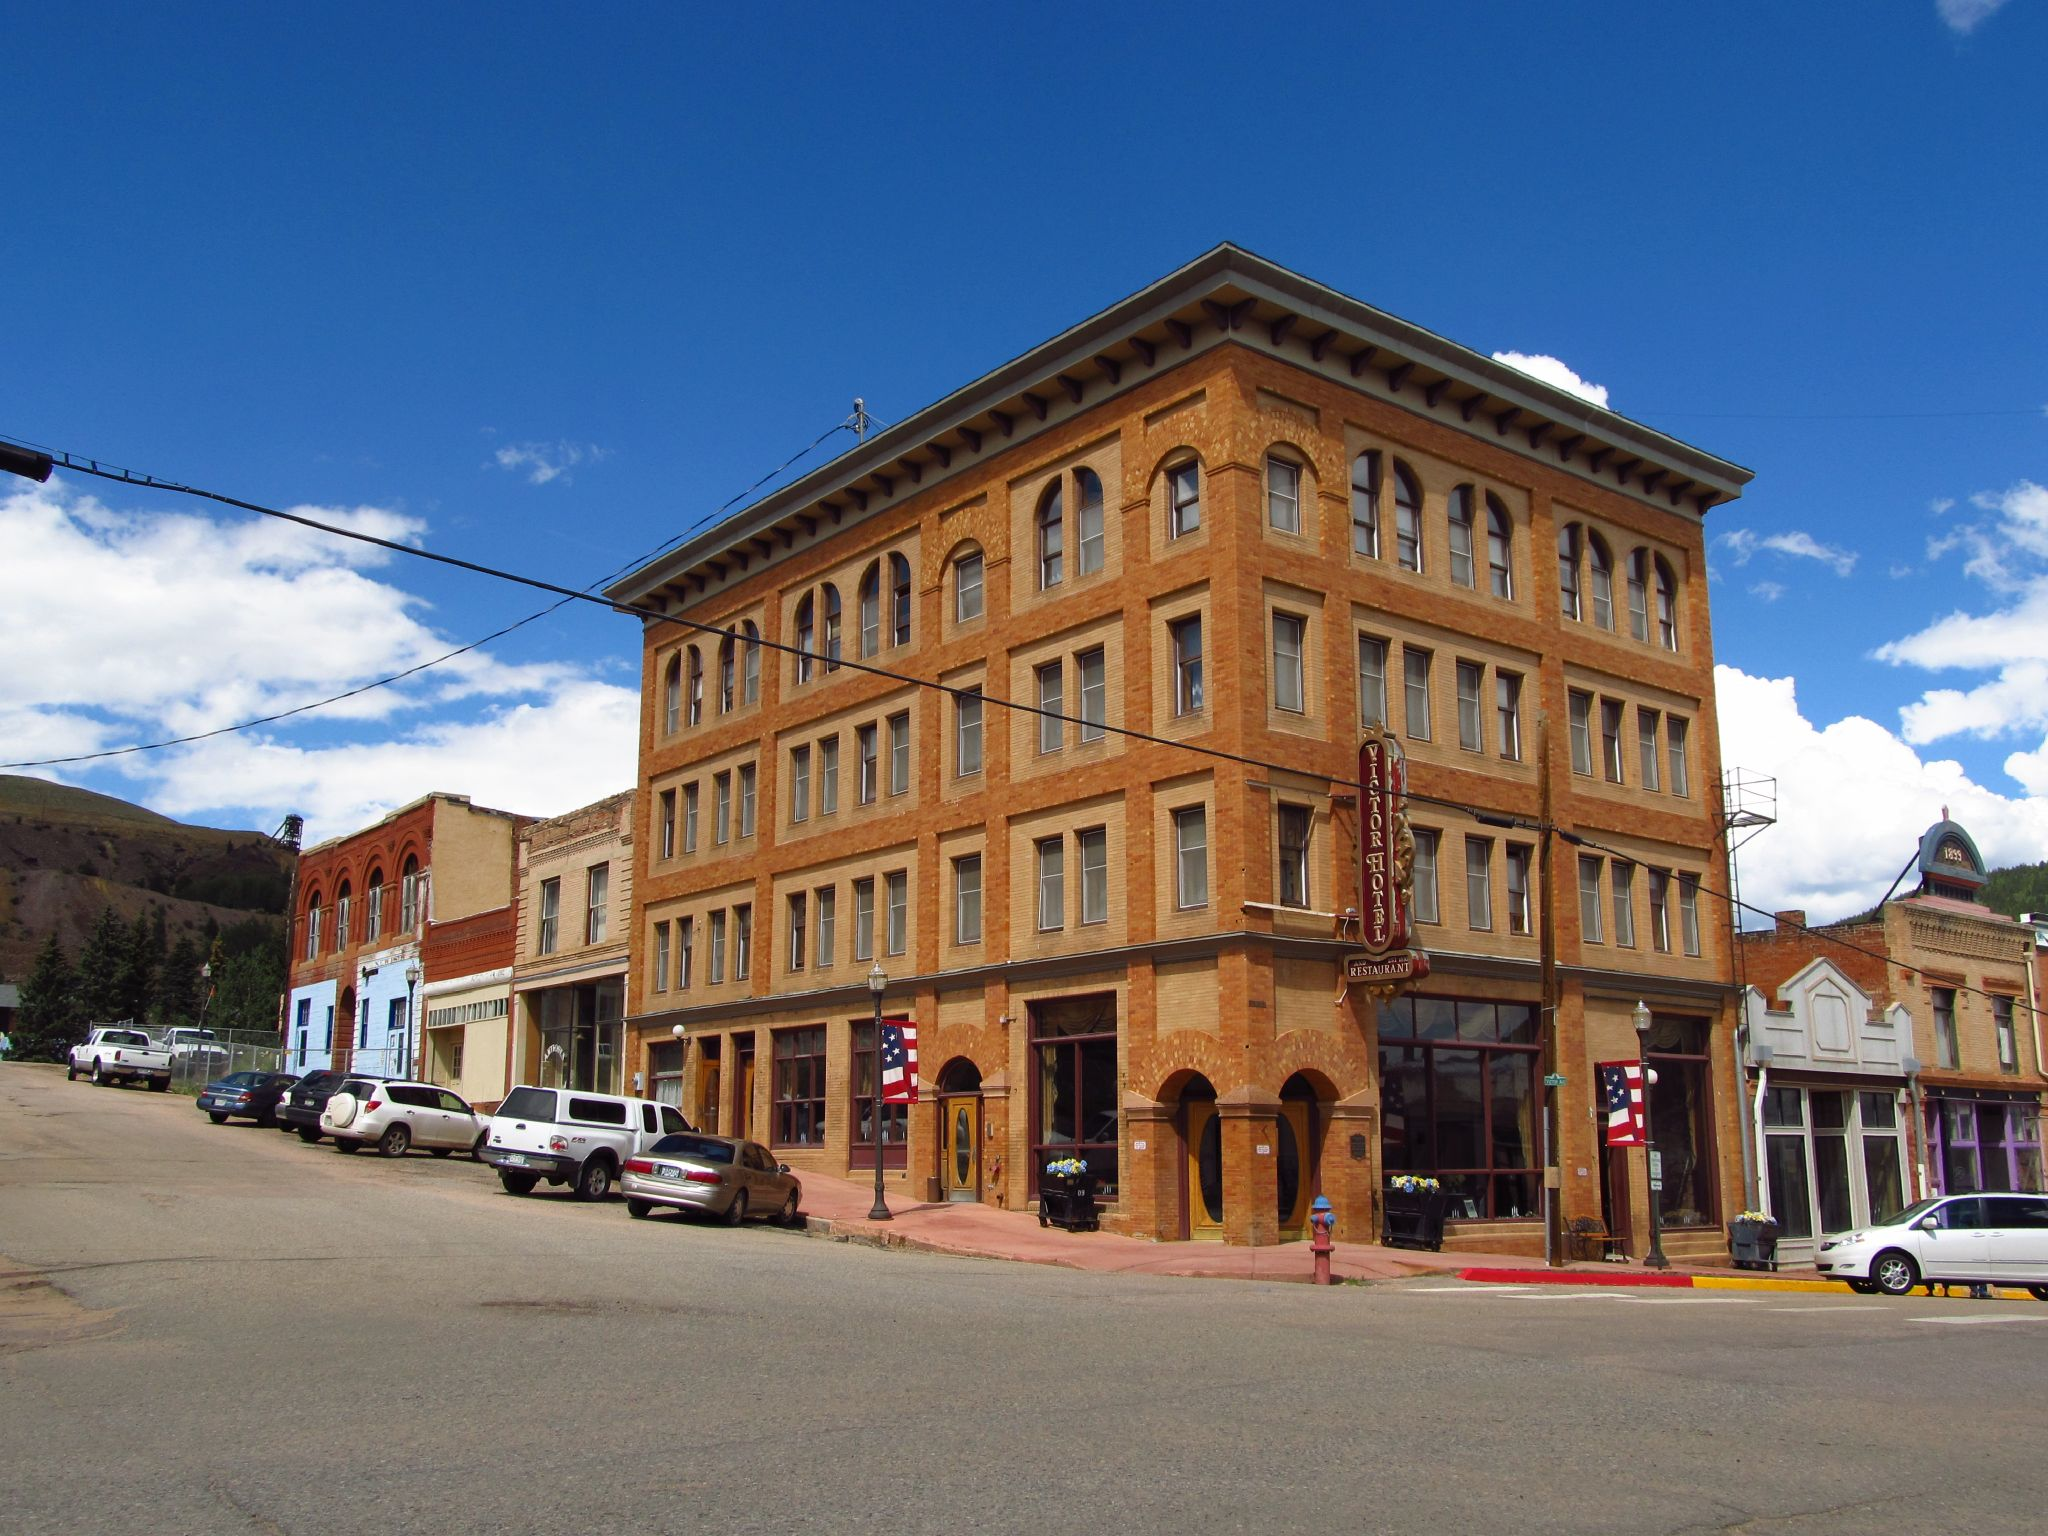 image of the victor hotel